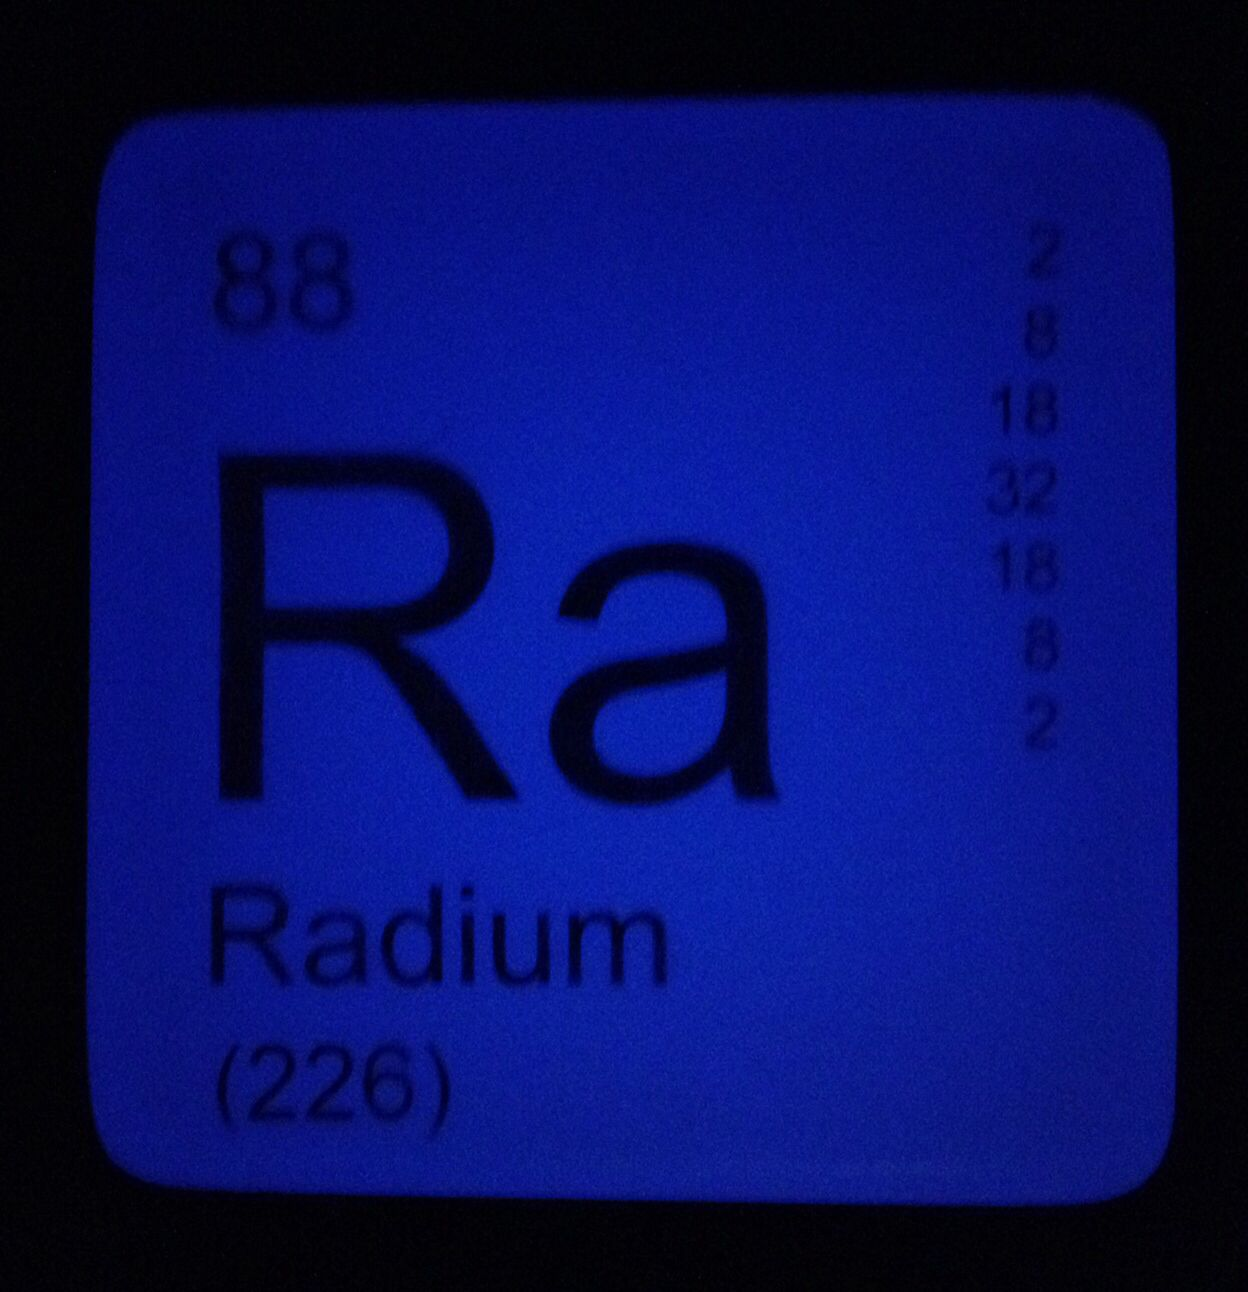 Here you go for the geek or science buff in your life check for the geek or science buff in your life check out our its elementaryriodic table soaps radioactive elements even glow in the dark urtaz Choice Image